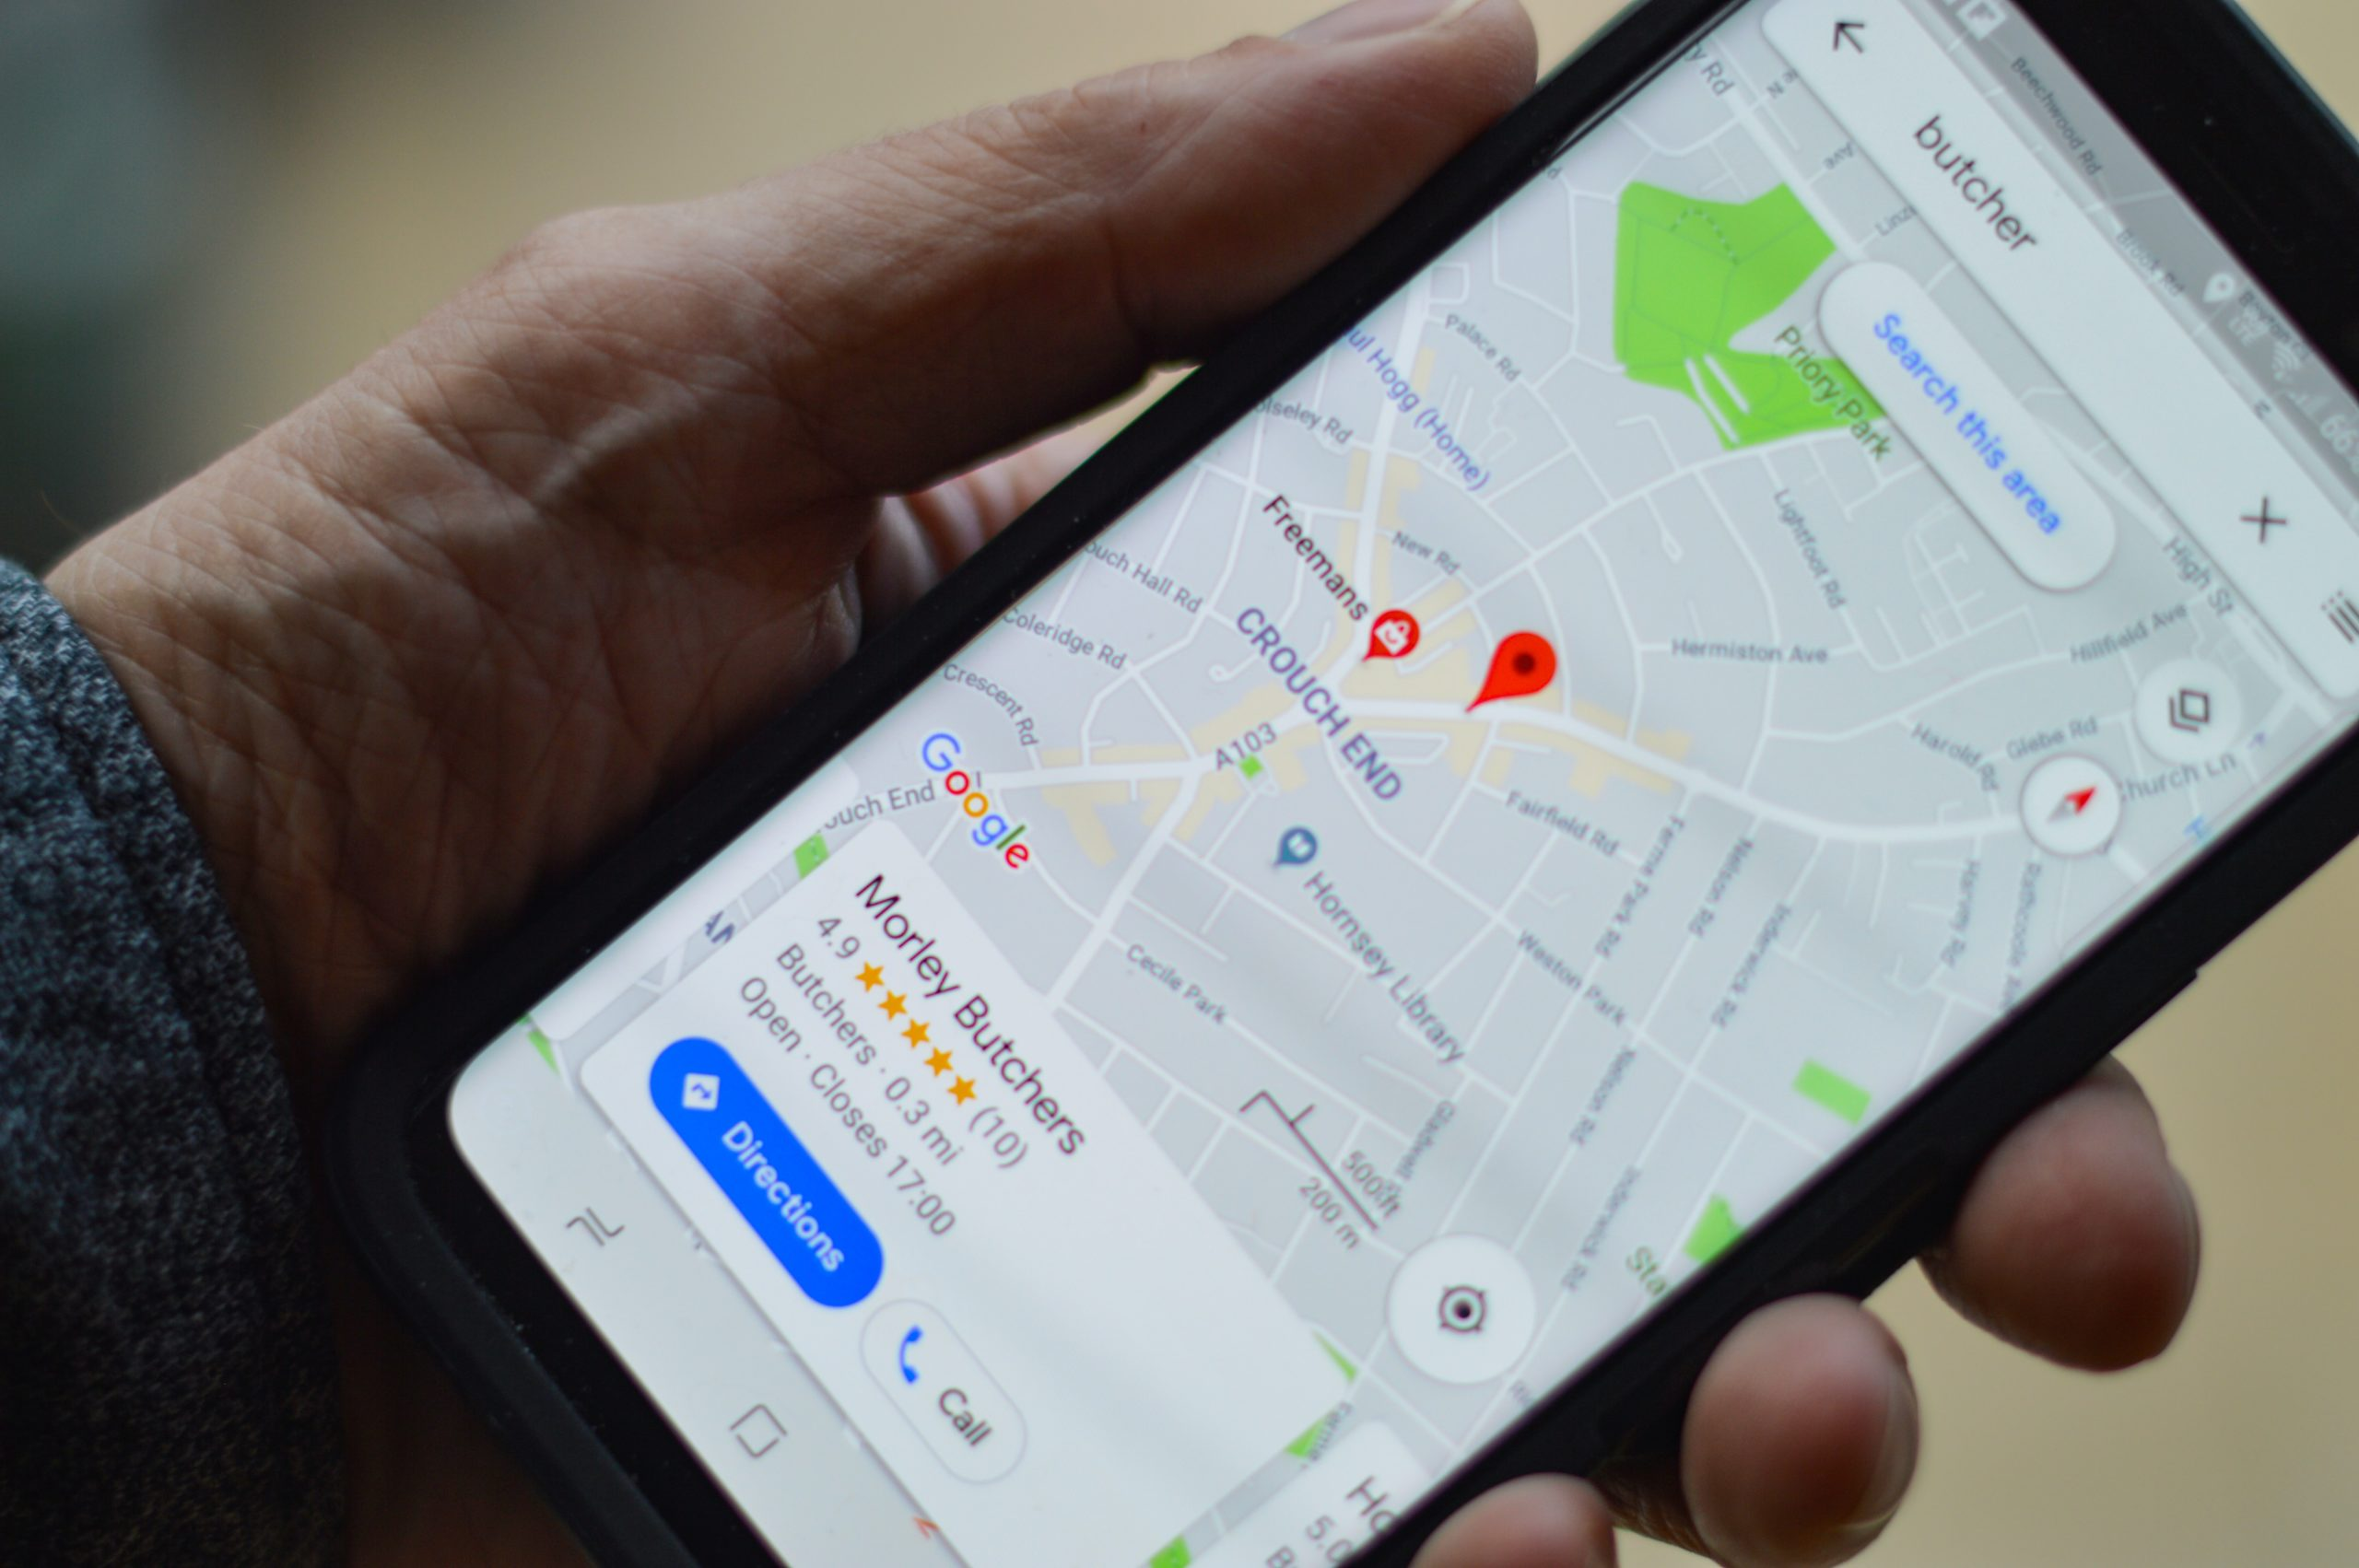 iphone in person's hand with Google maps onscreen